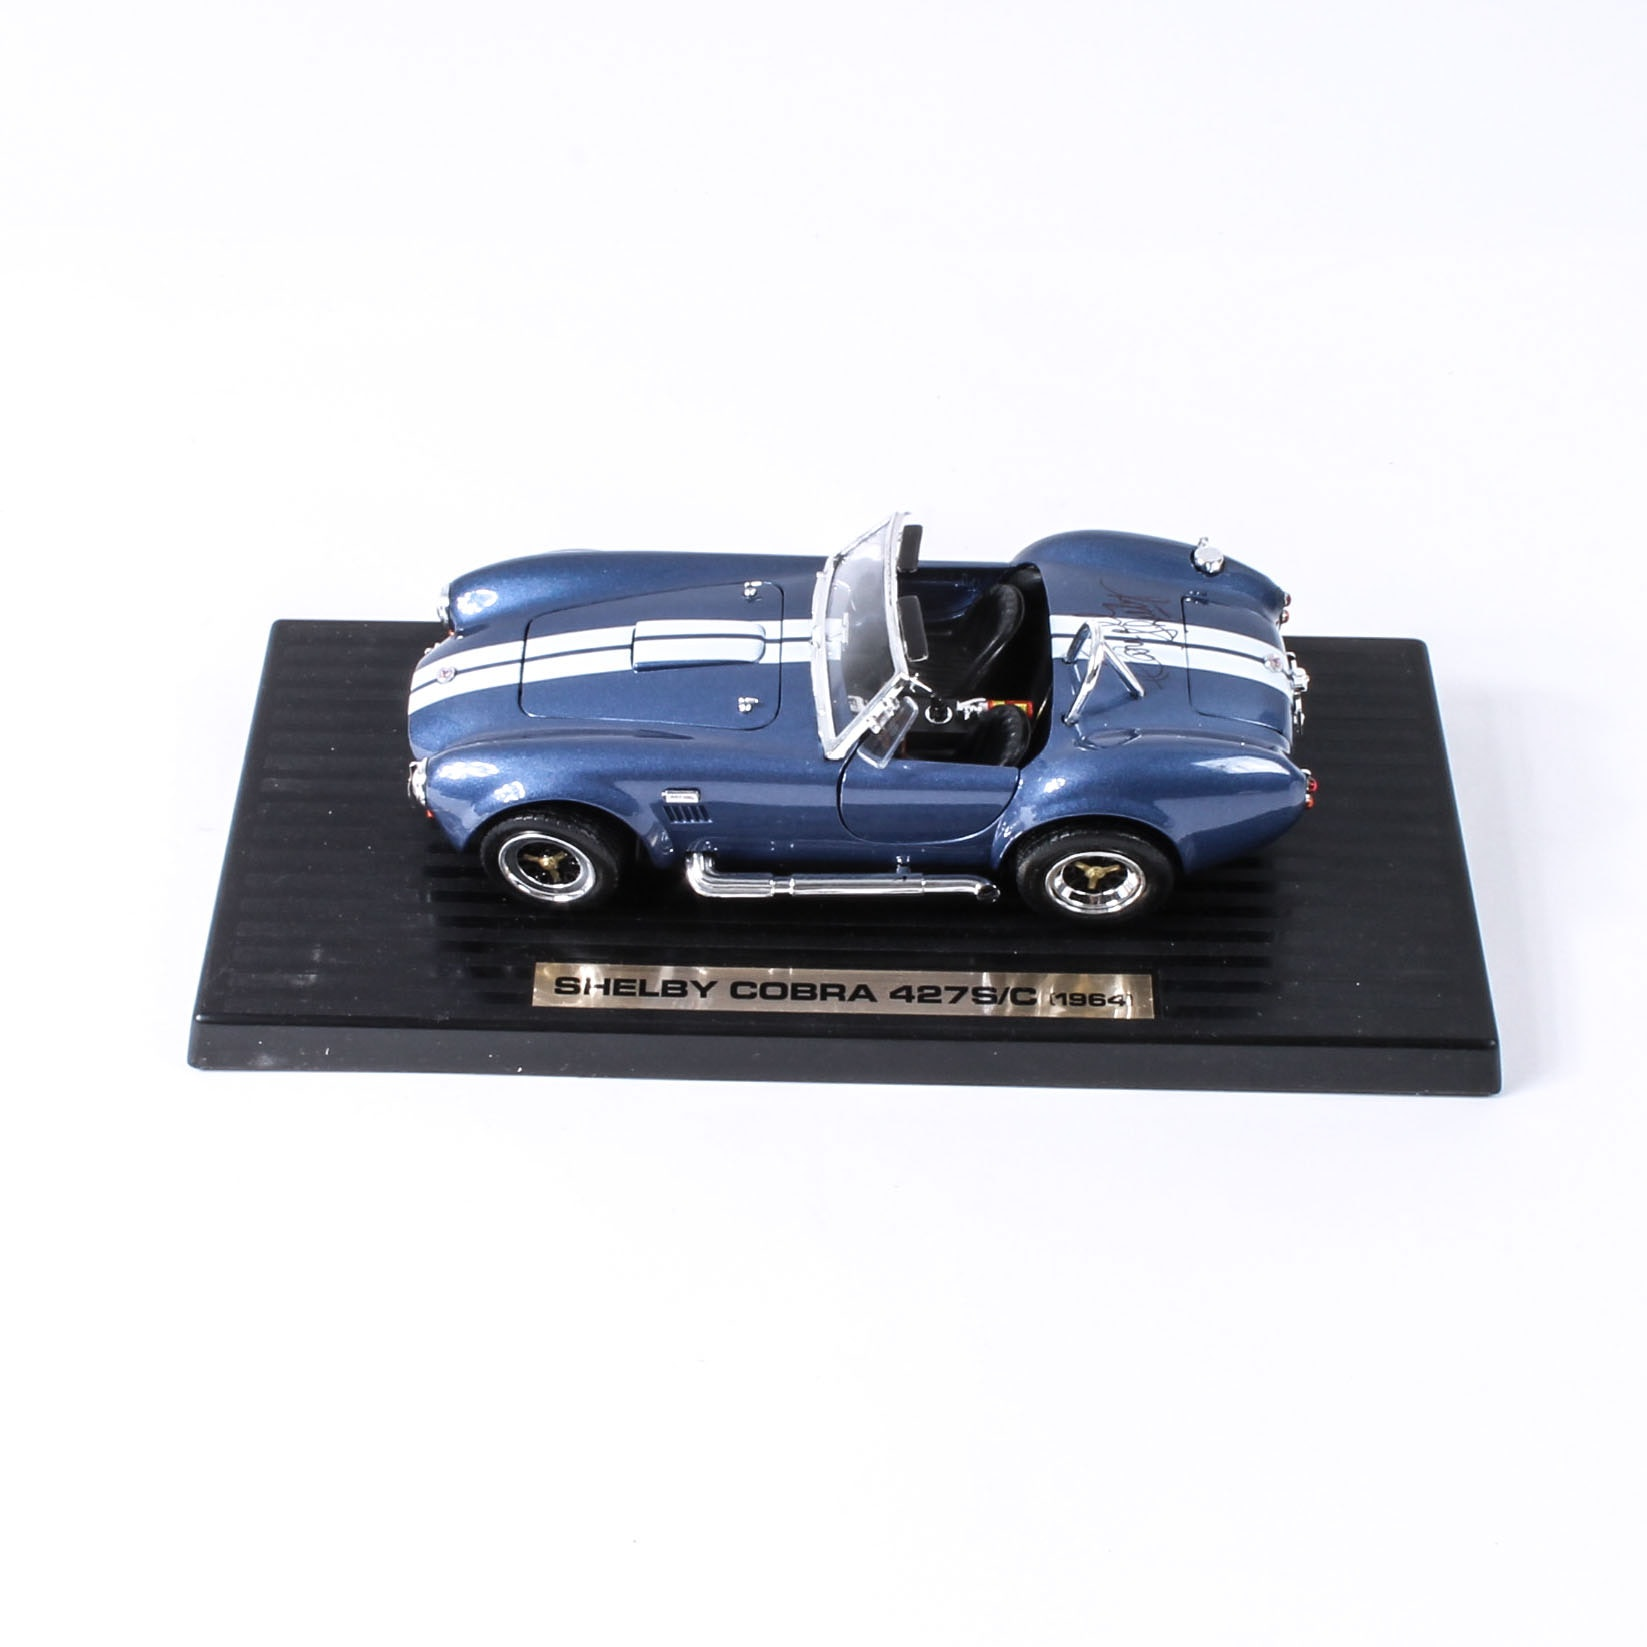 Carroll Shelby Autographed 1:18 Scale Model Shelby Cobra